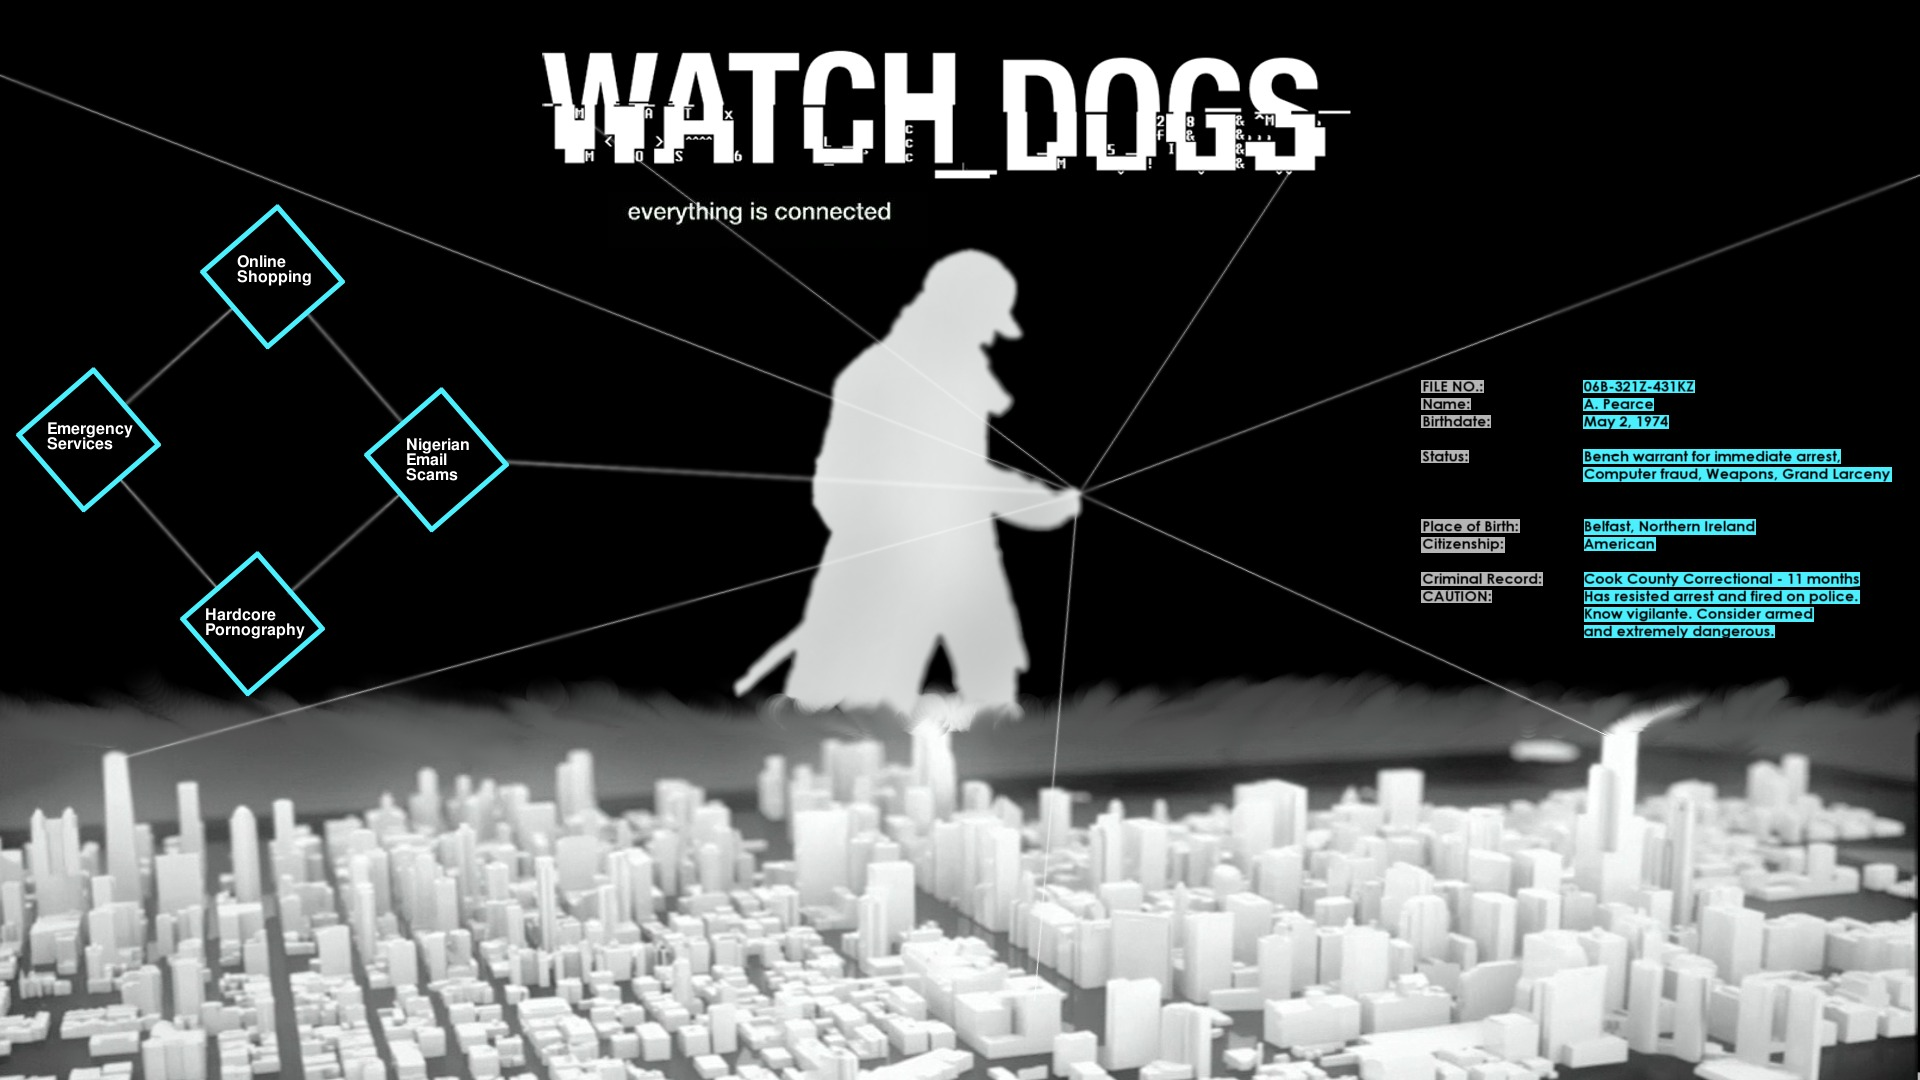 watch_dogs___wallpaper_by_nickatnite89-d52t0lk-1920x1080